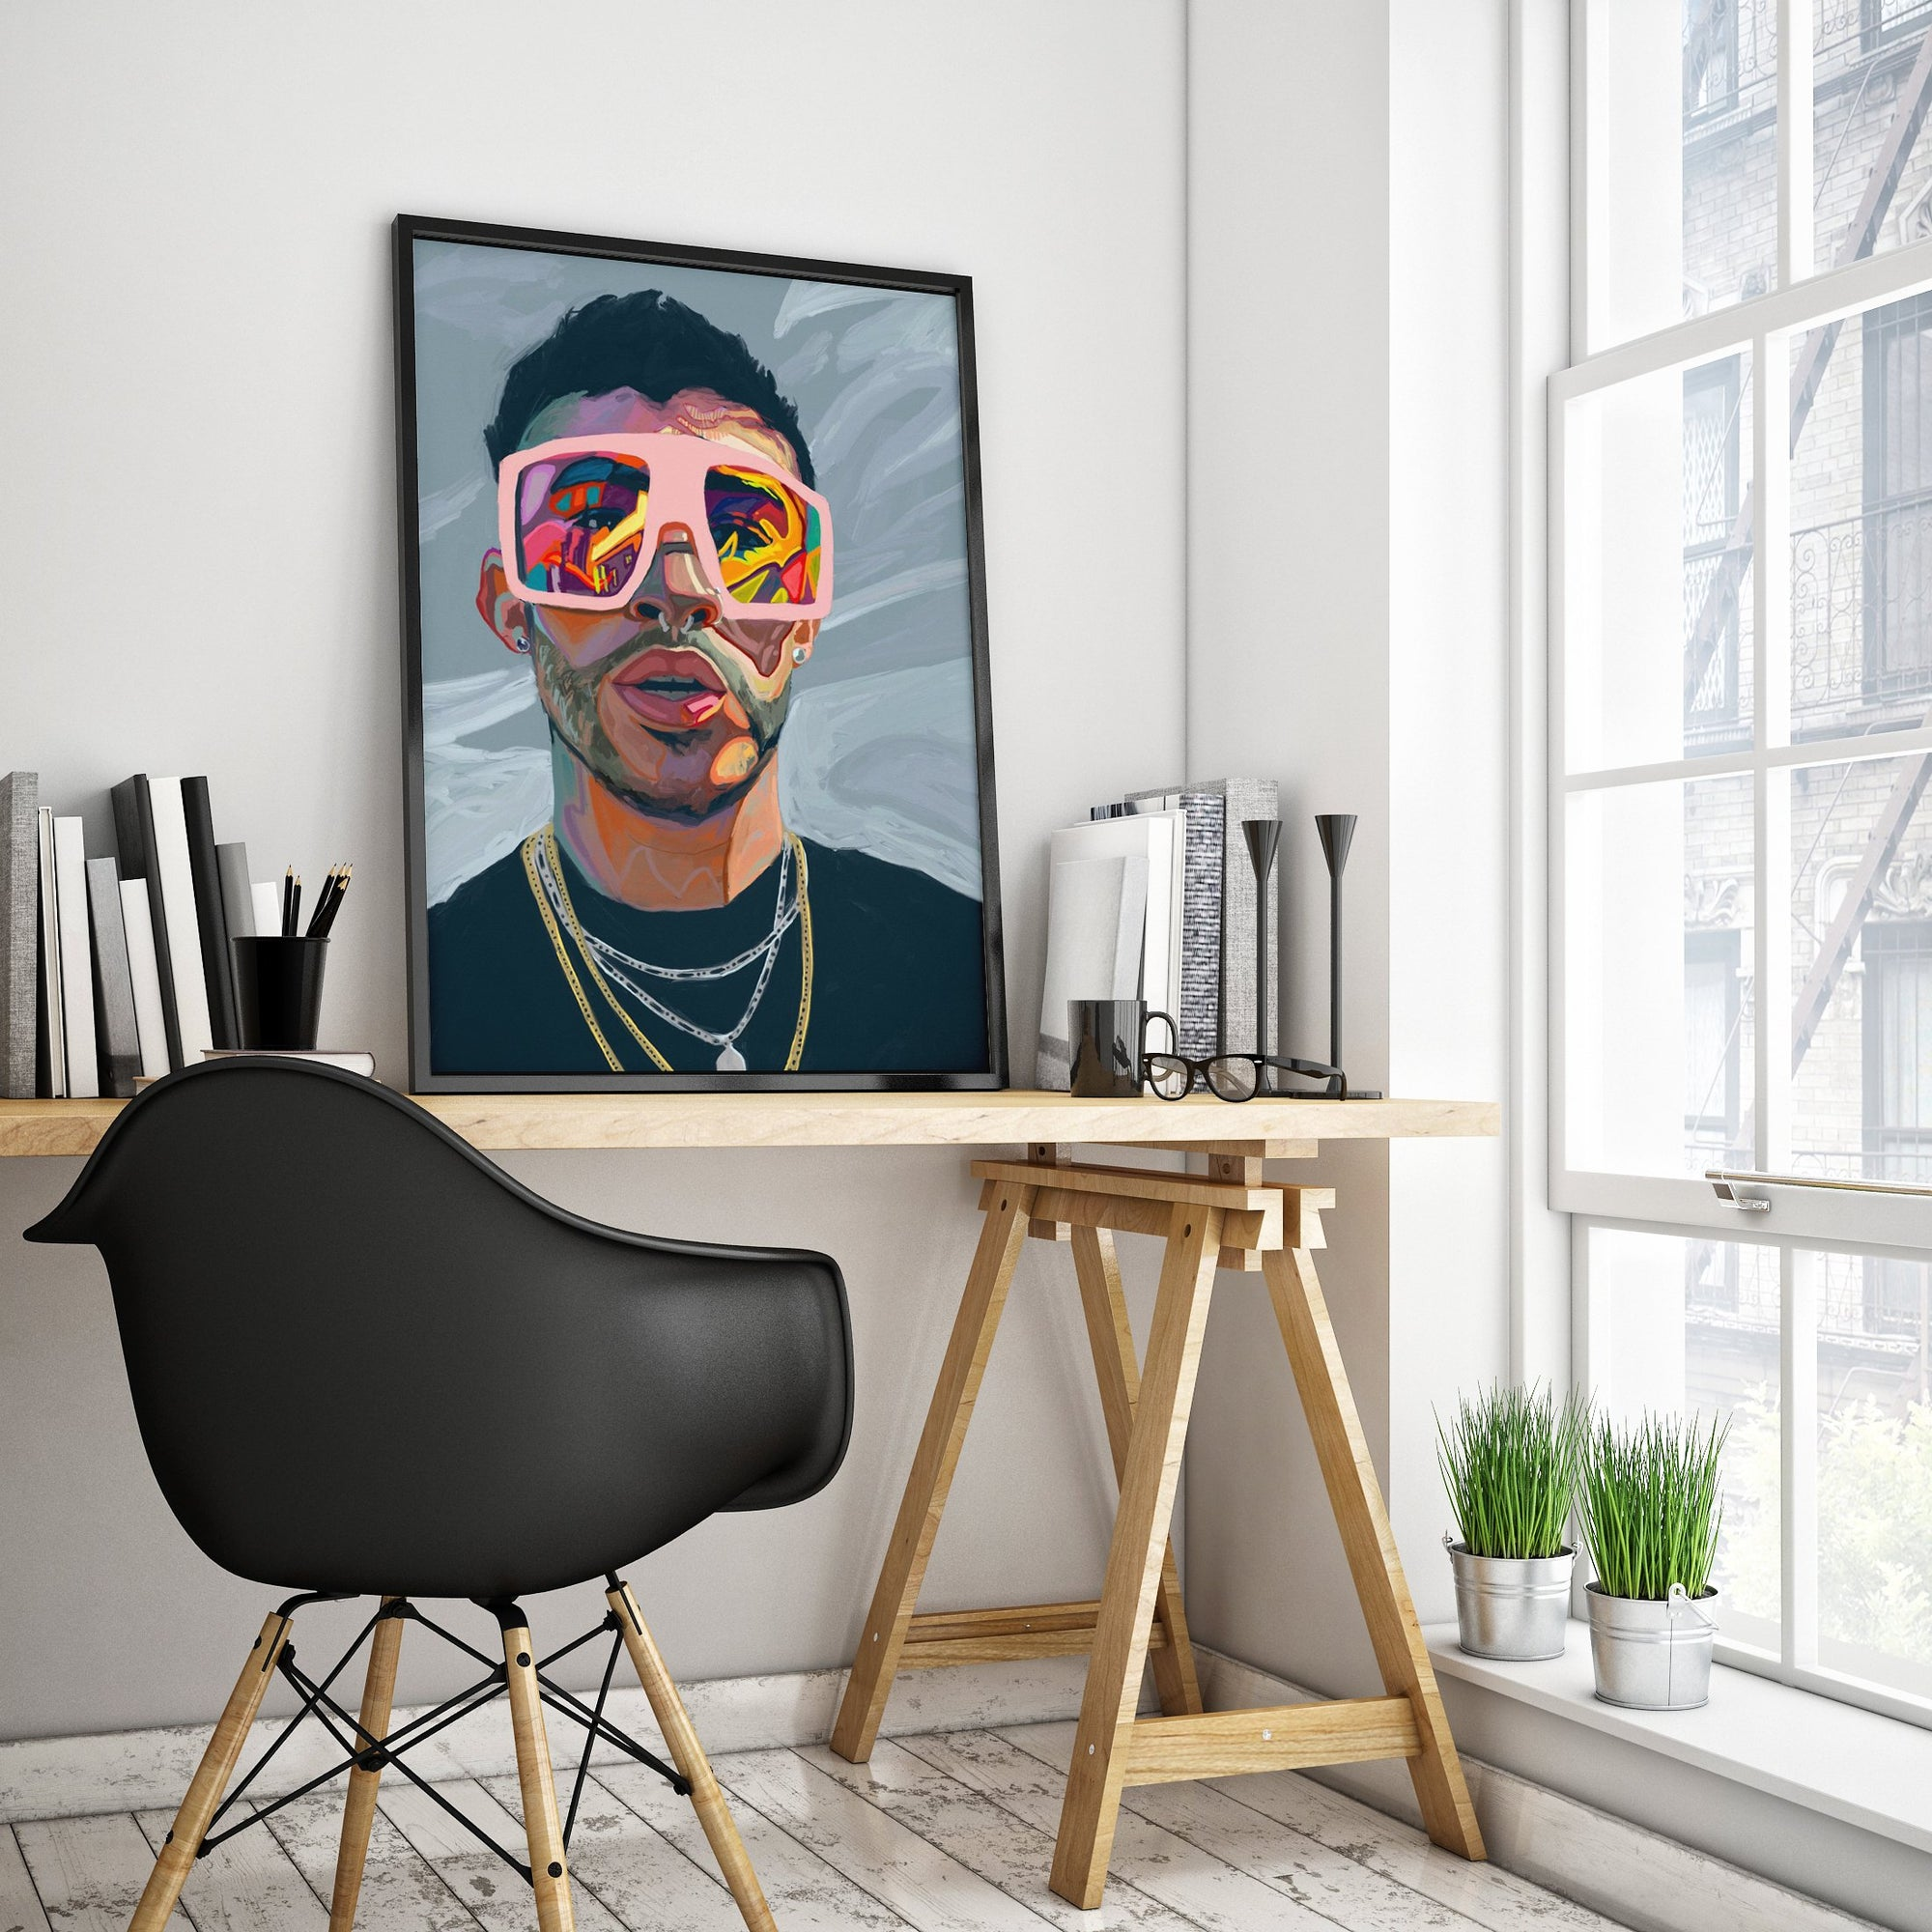 BAD BUNNY Wall Art Poster-Home Decor-JD Odds & Ends